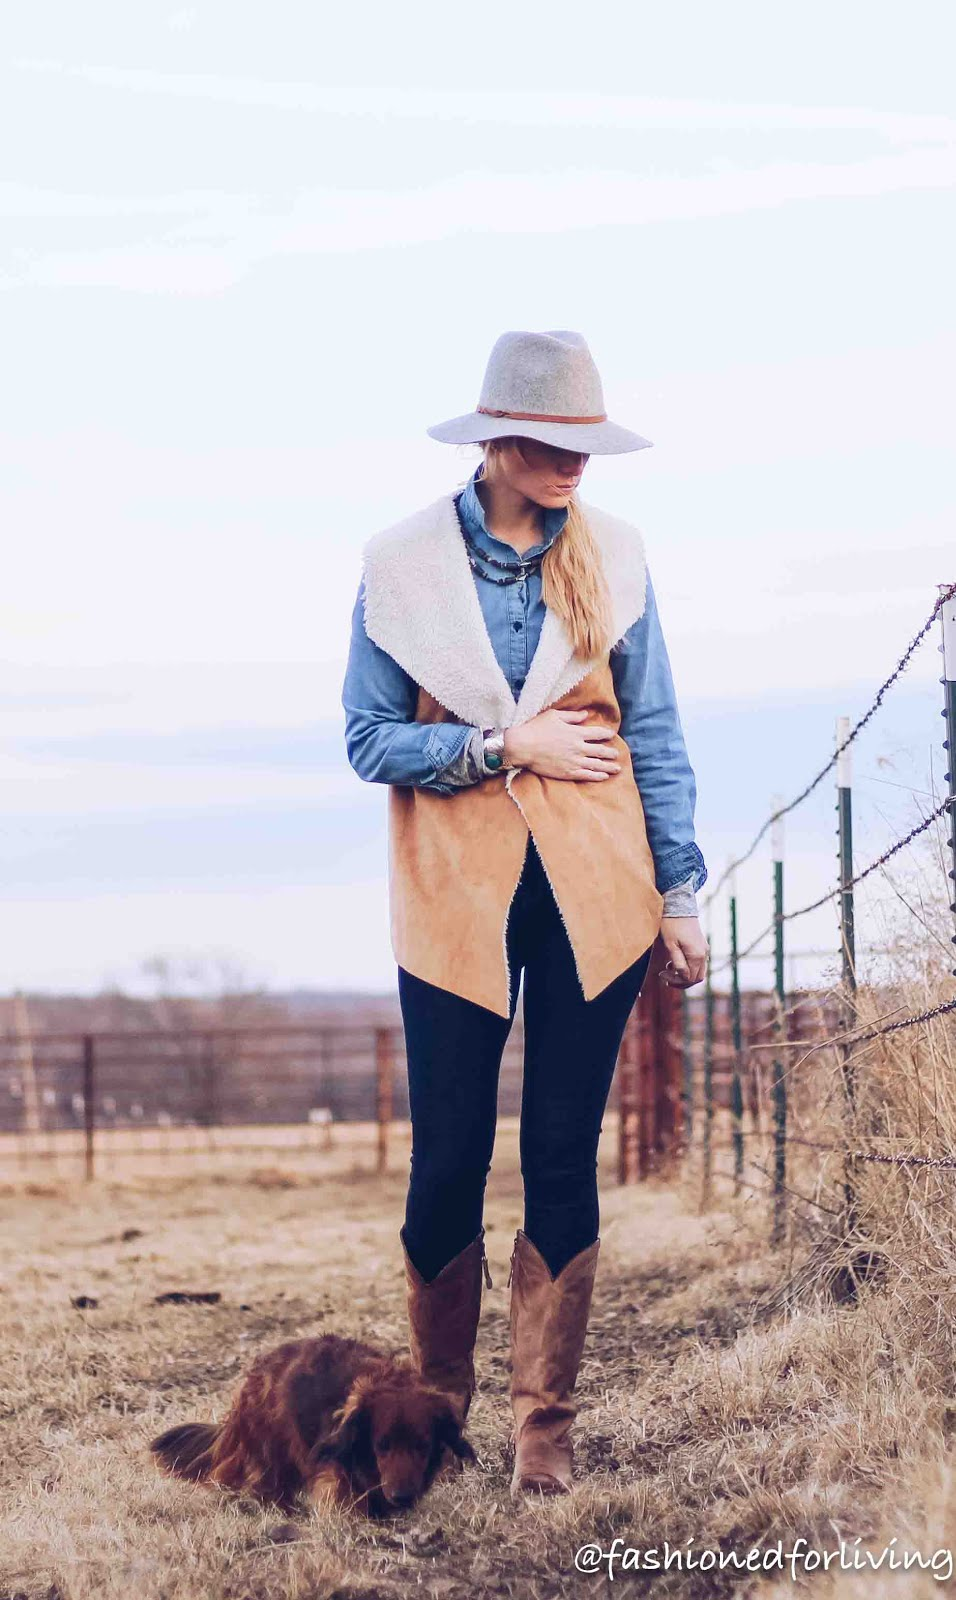 92c28a03a9f outfit details hat - Target - here denim shirt - Old Navy - here high  waisted skinnies - Old Navy - here cowboy boots - Tony Lama - here